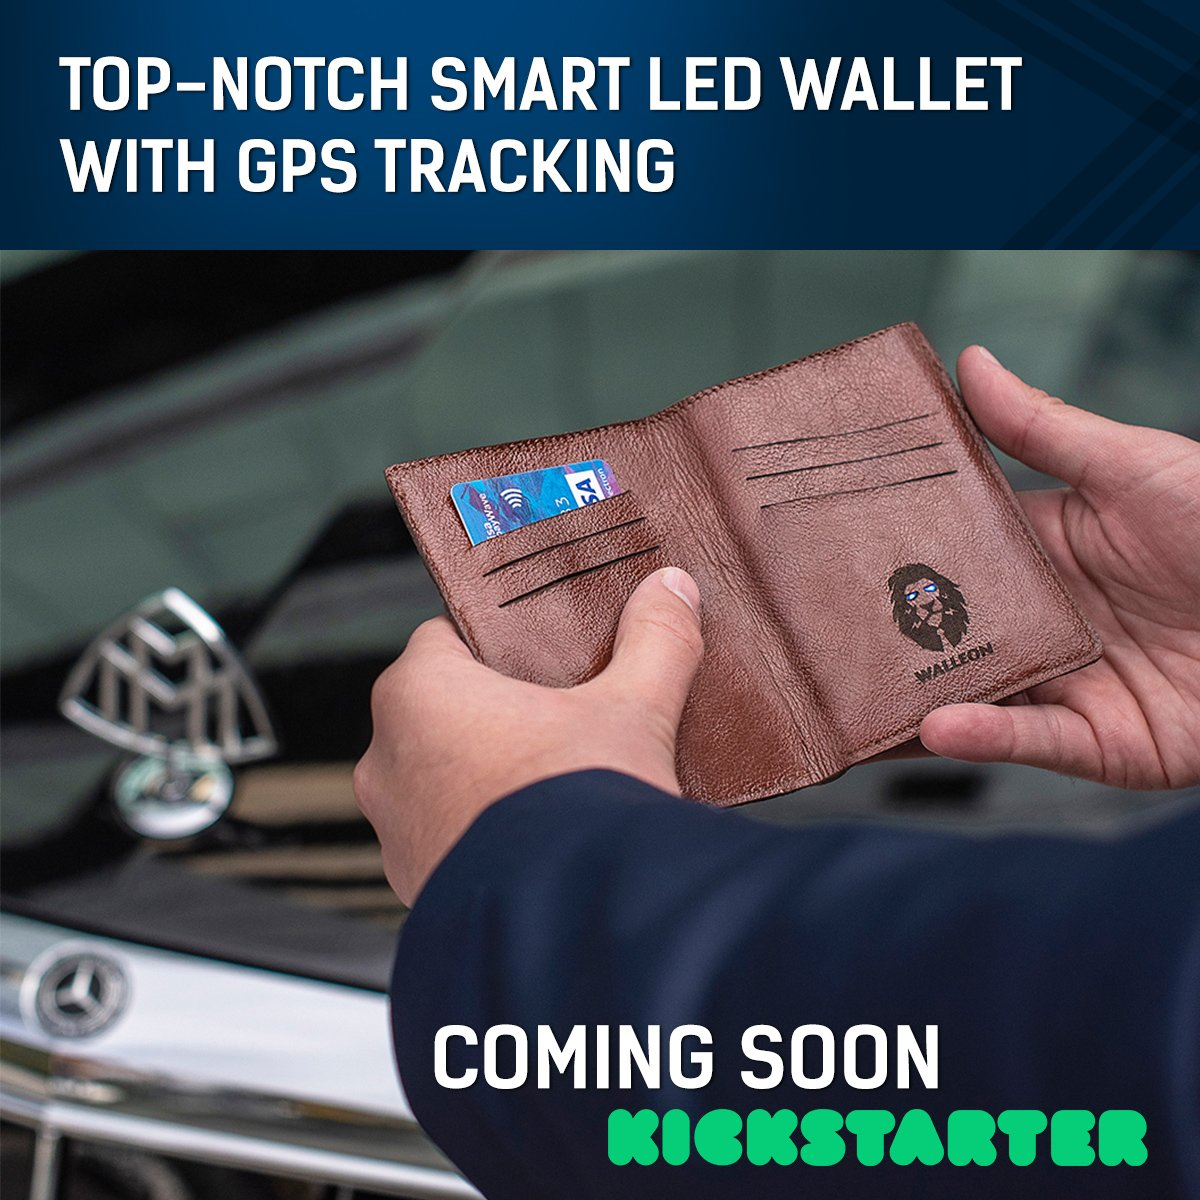 Walleon GPS Tracking Wallet